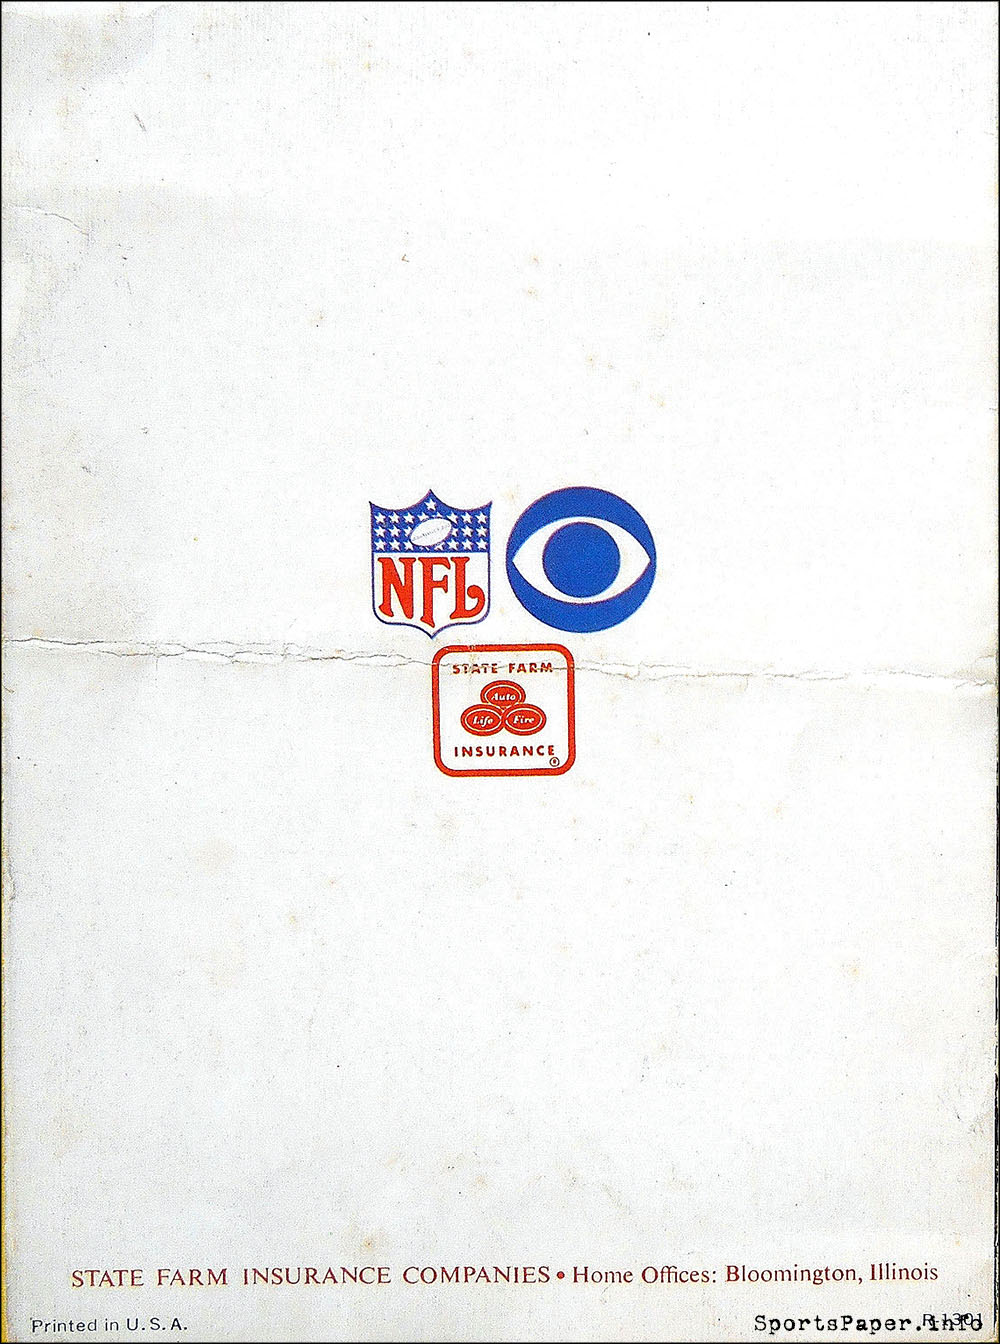 1967 State Farm/George Carlin NFL Brochure | SportsPaper.info - The Blog